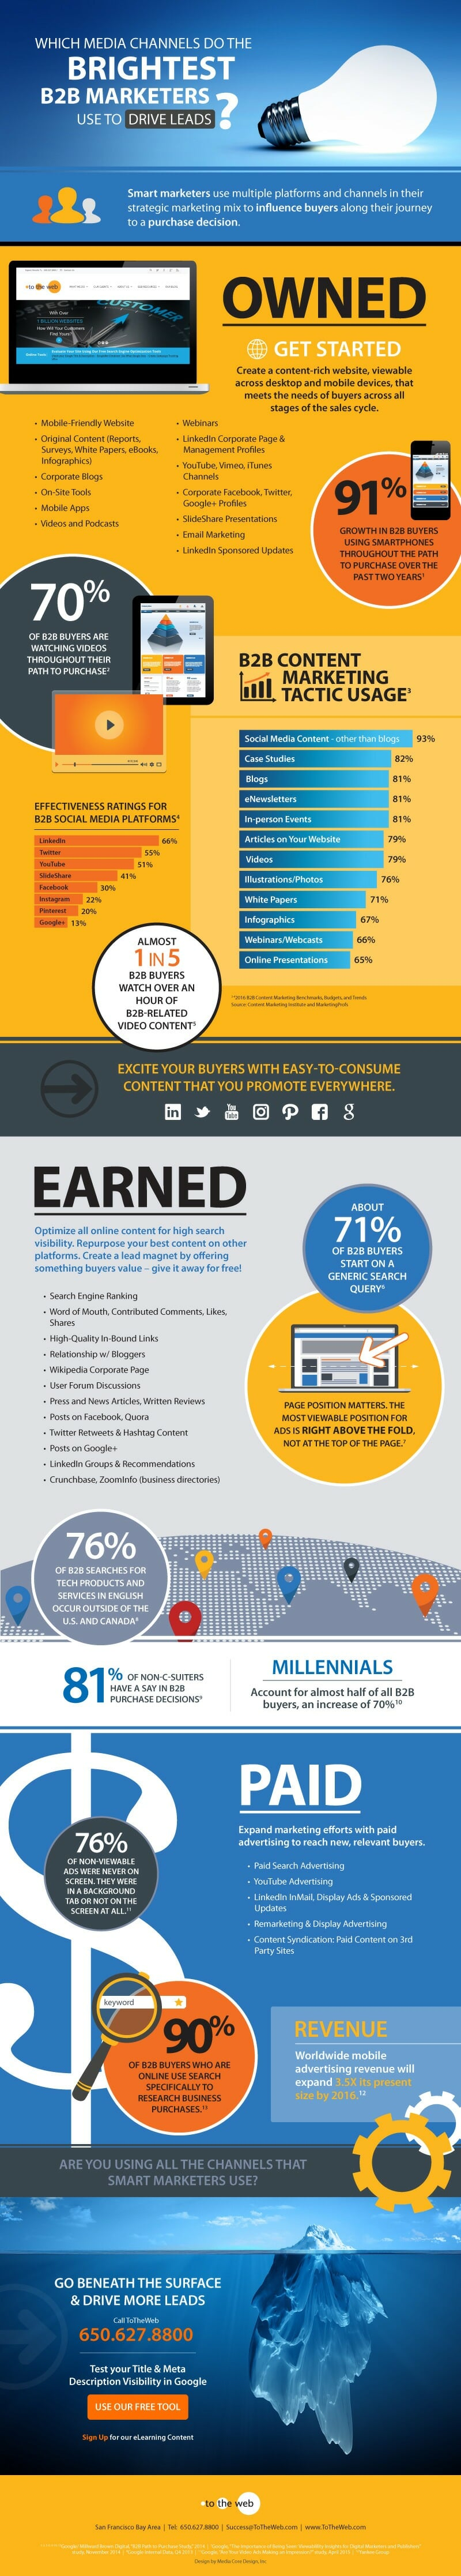 totheweb-media-channels-smart-marketers-use-to-drive-leads-infographic-800x4467